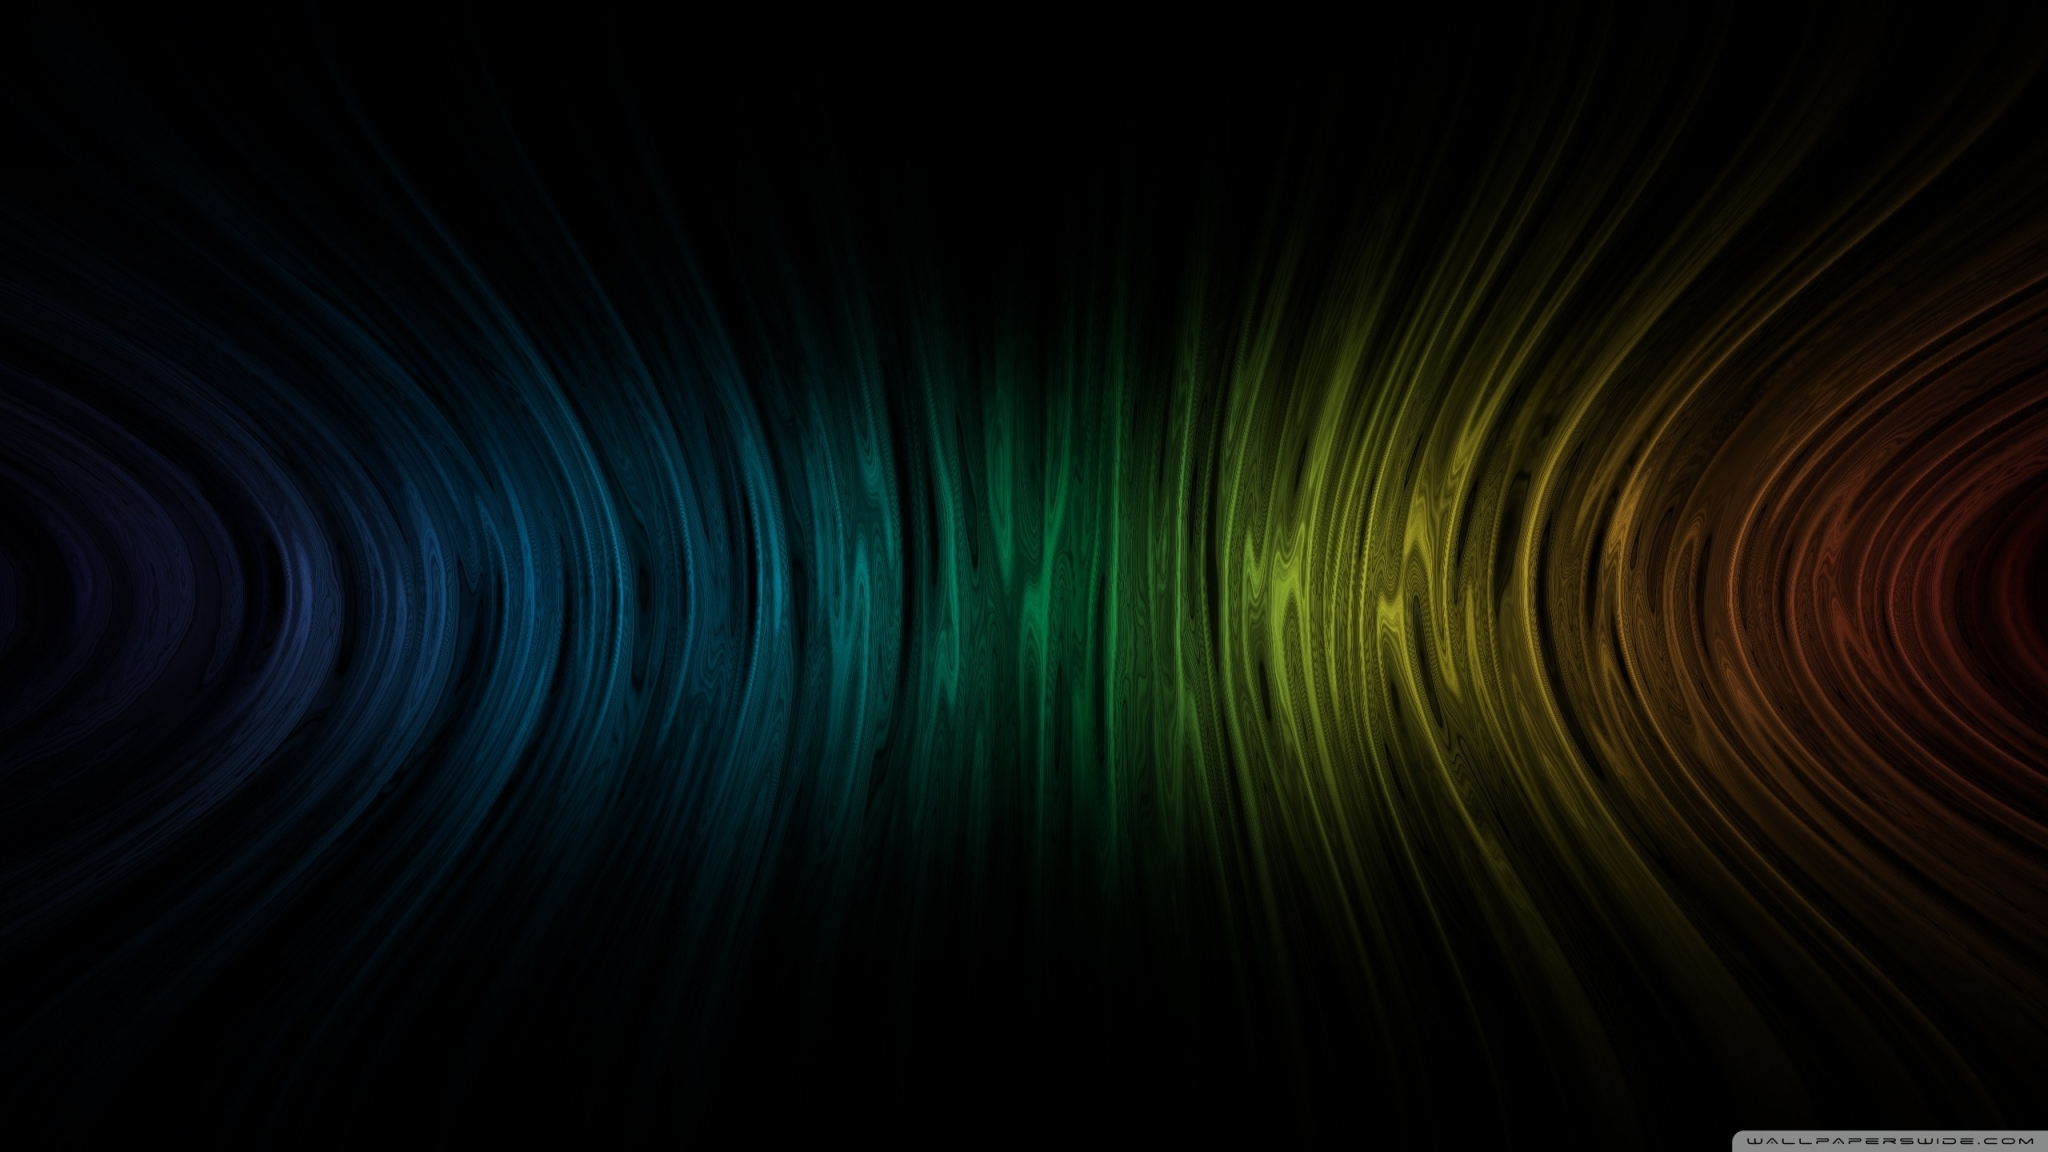 2048x1152 162 abstract dark background wallpaperjpg 2048x1152